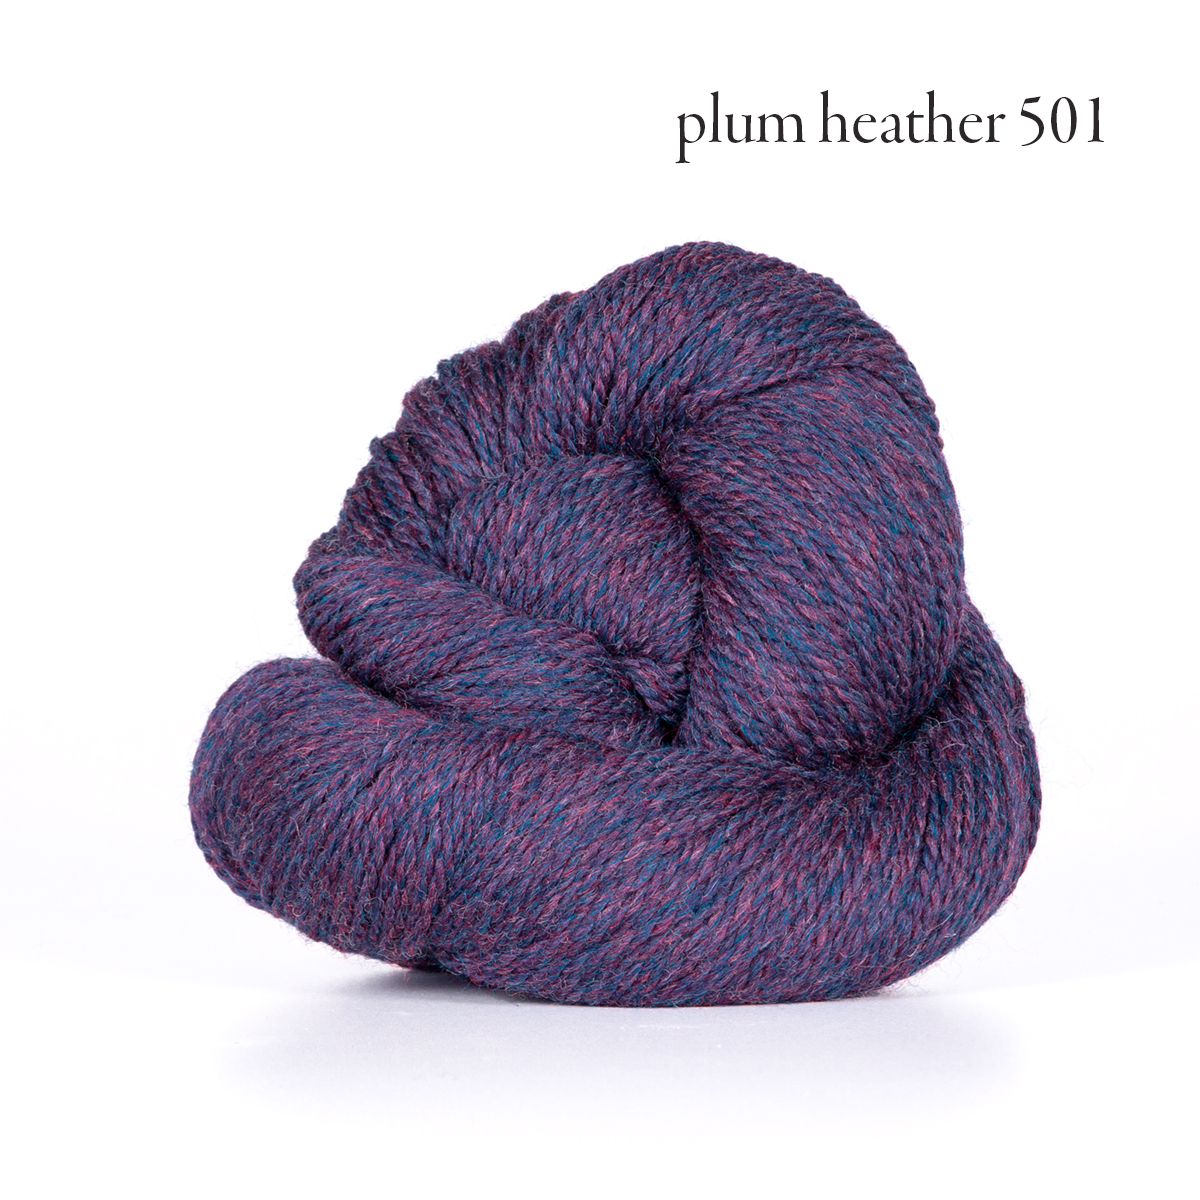 plum heather 501_1.jpg